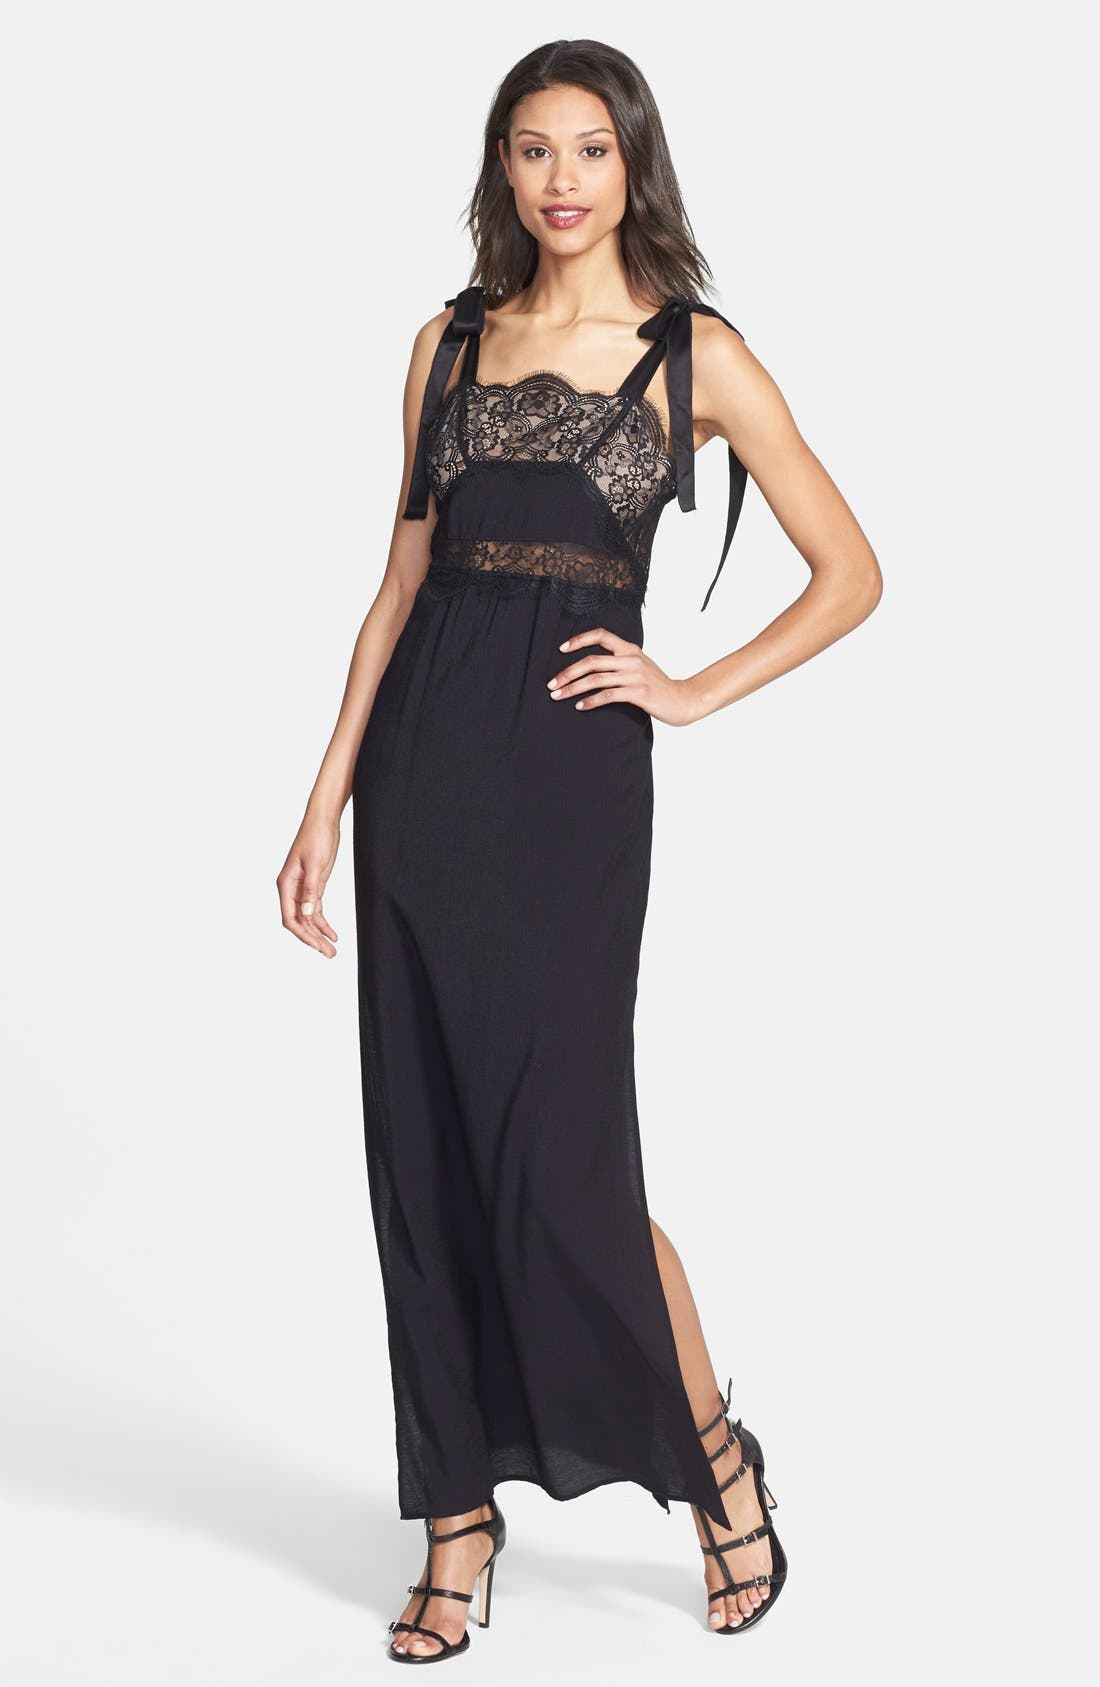 Alternate Image 1 Selected - For Love & Lemons 'Sweet Tea' Lace Trim Crepe Maxi Dress